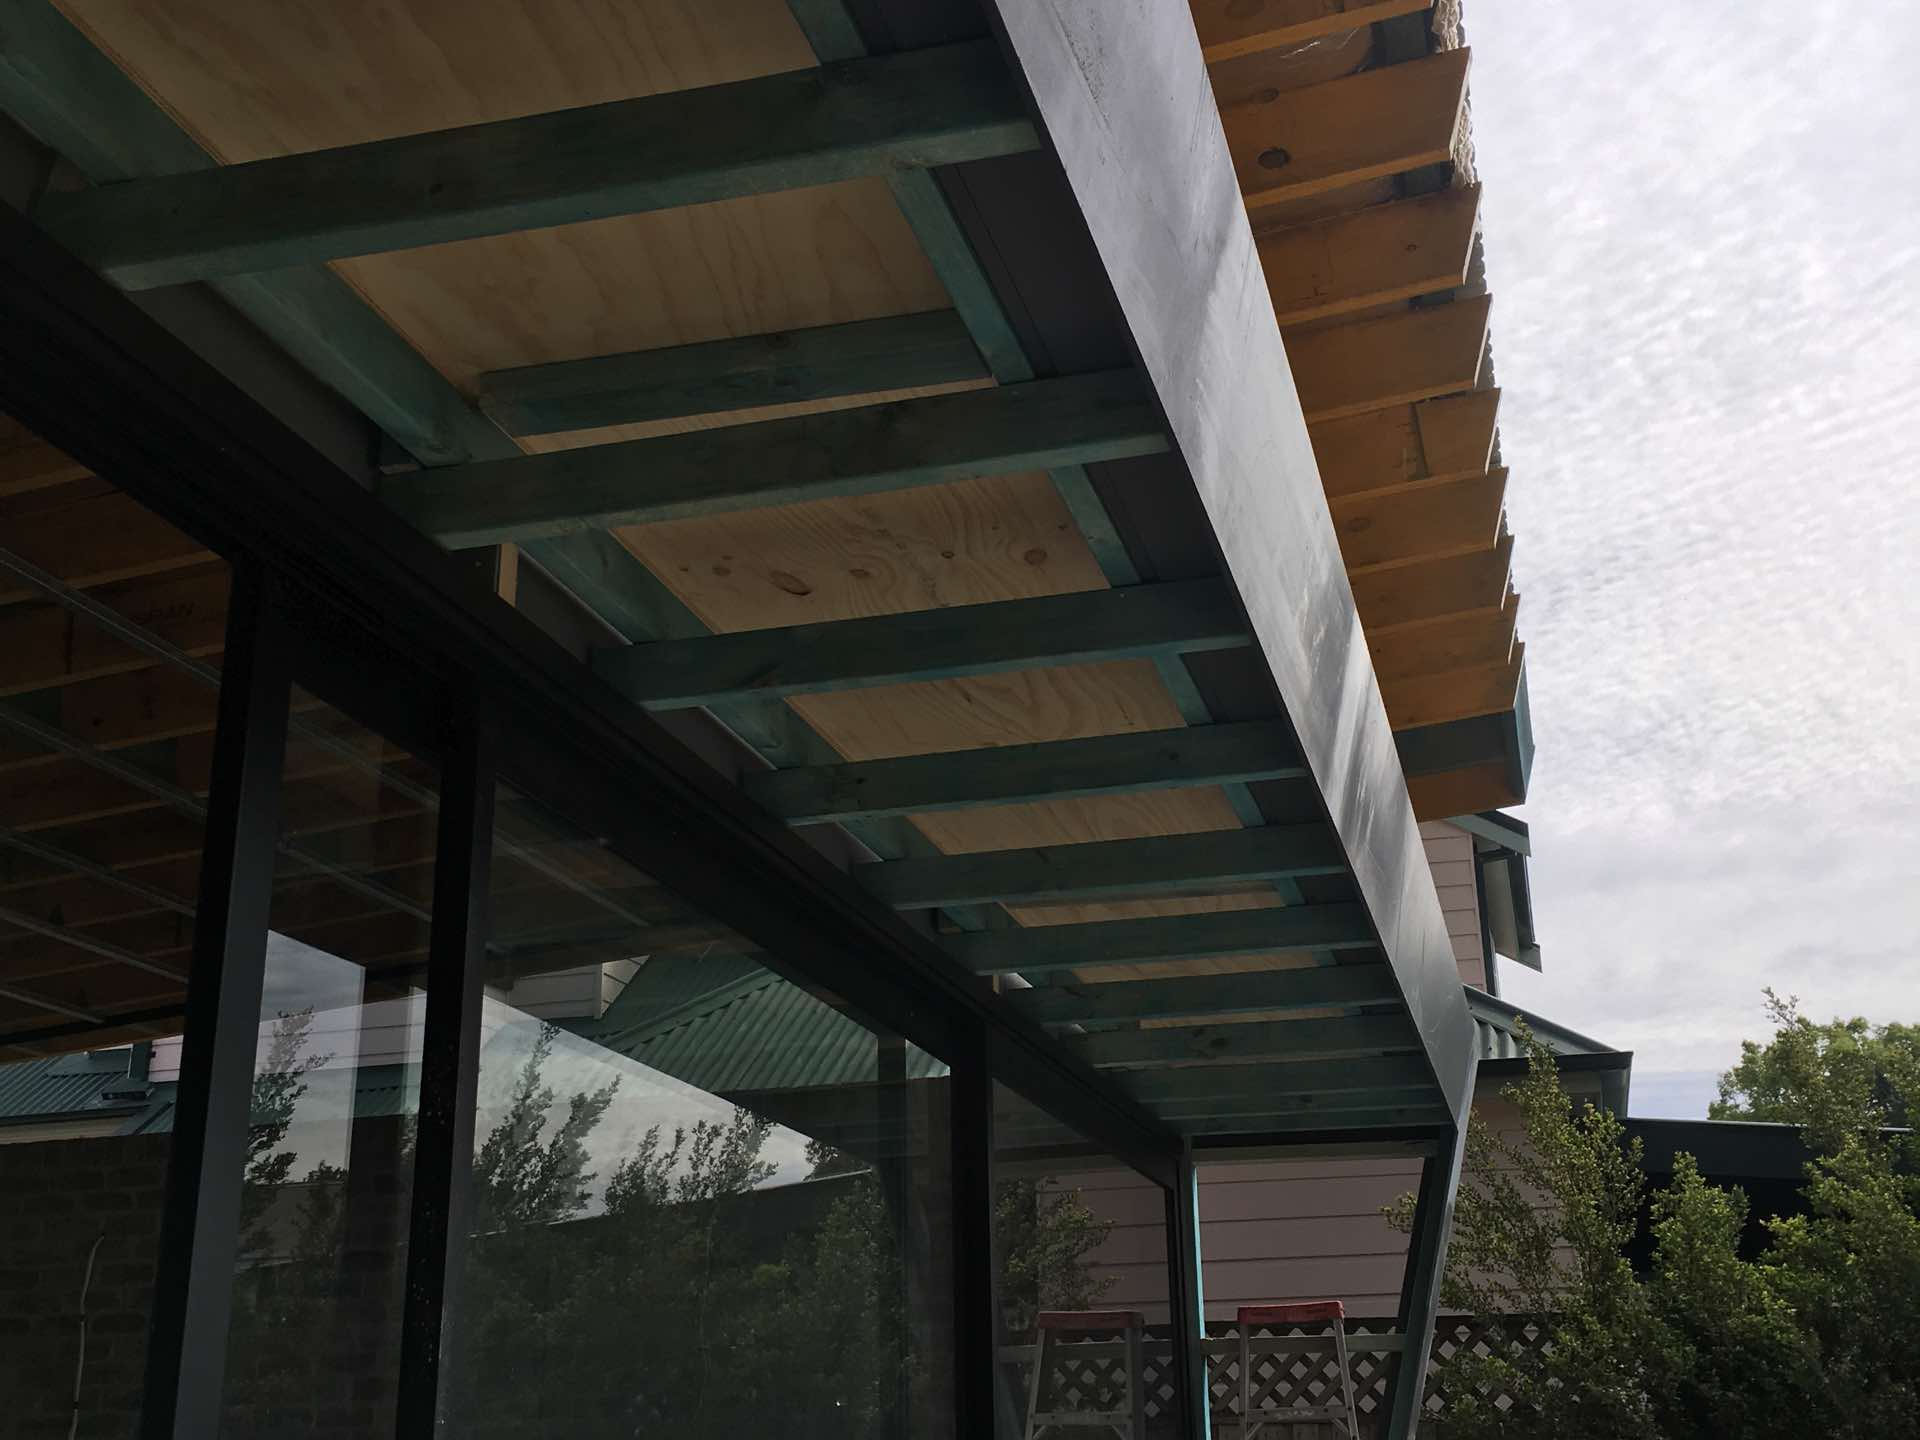 Small awning roof inside structural steel into box gutter Cammeray, NSW